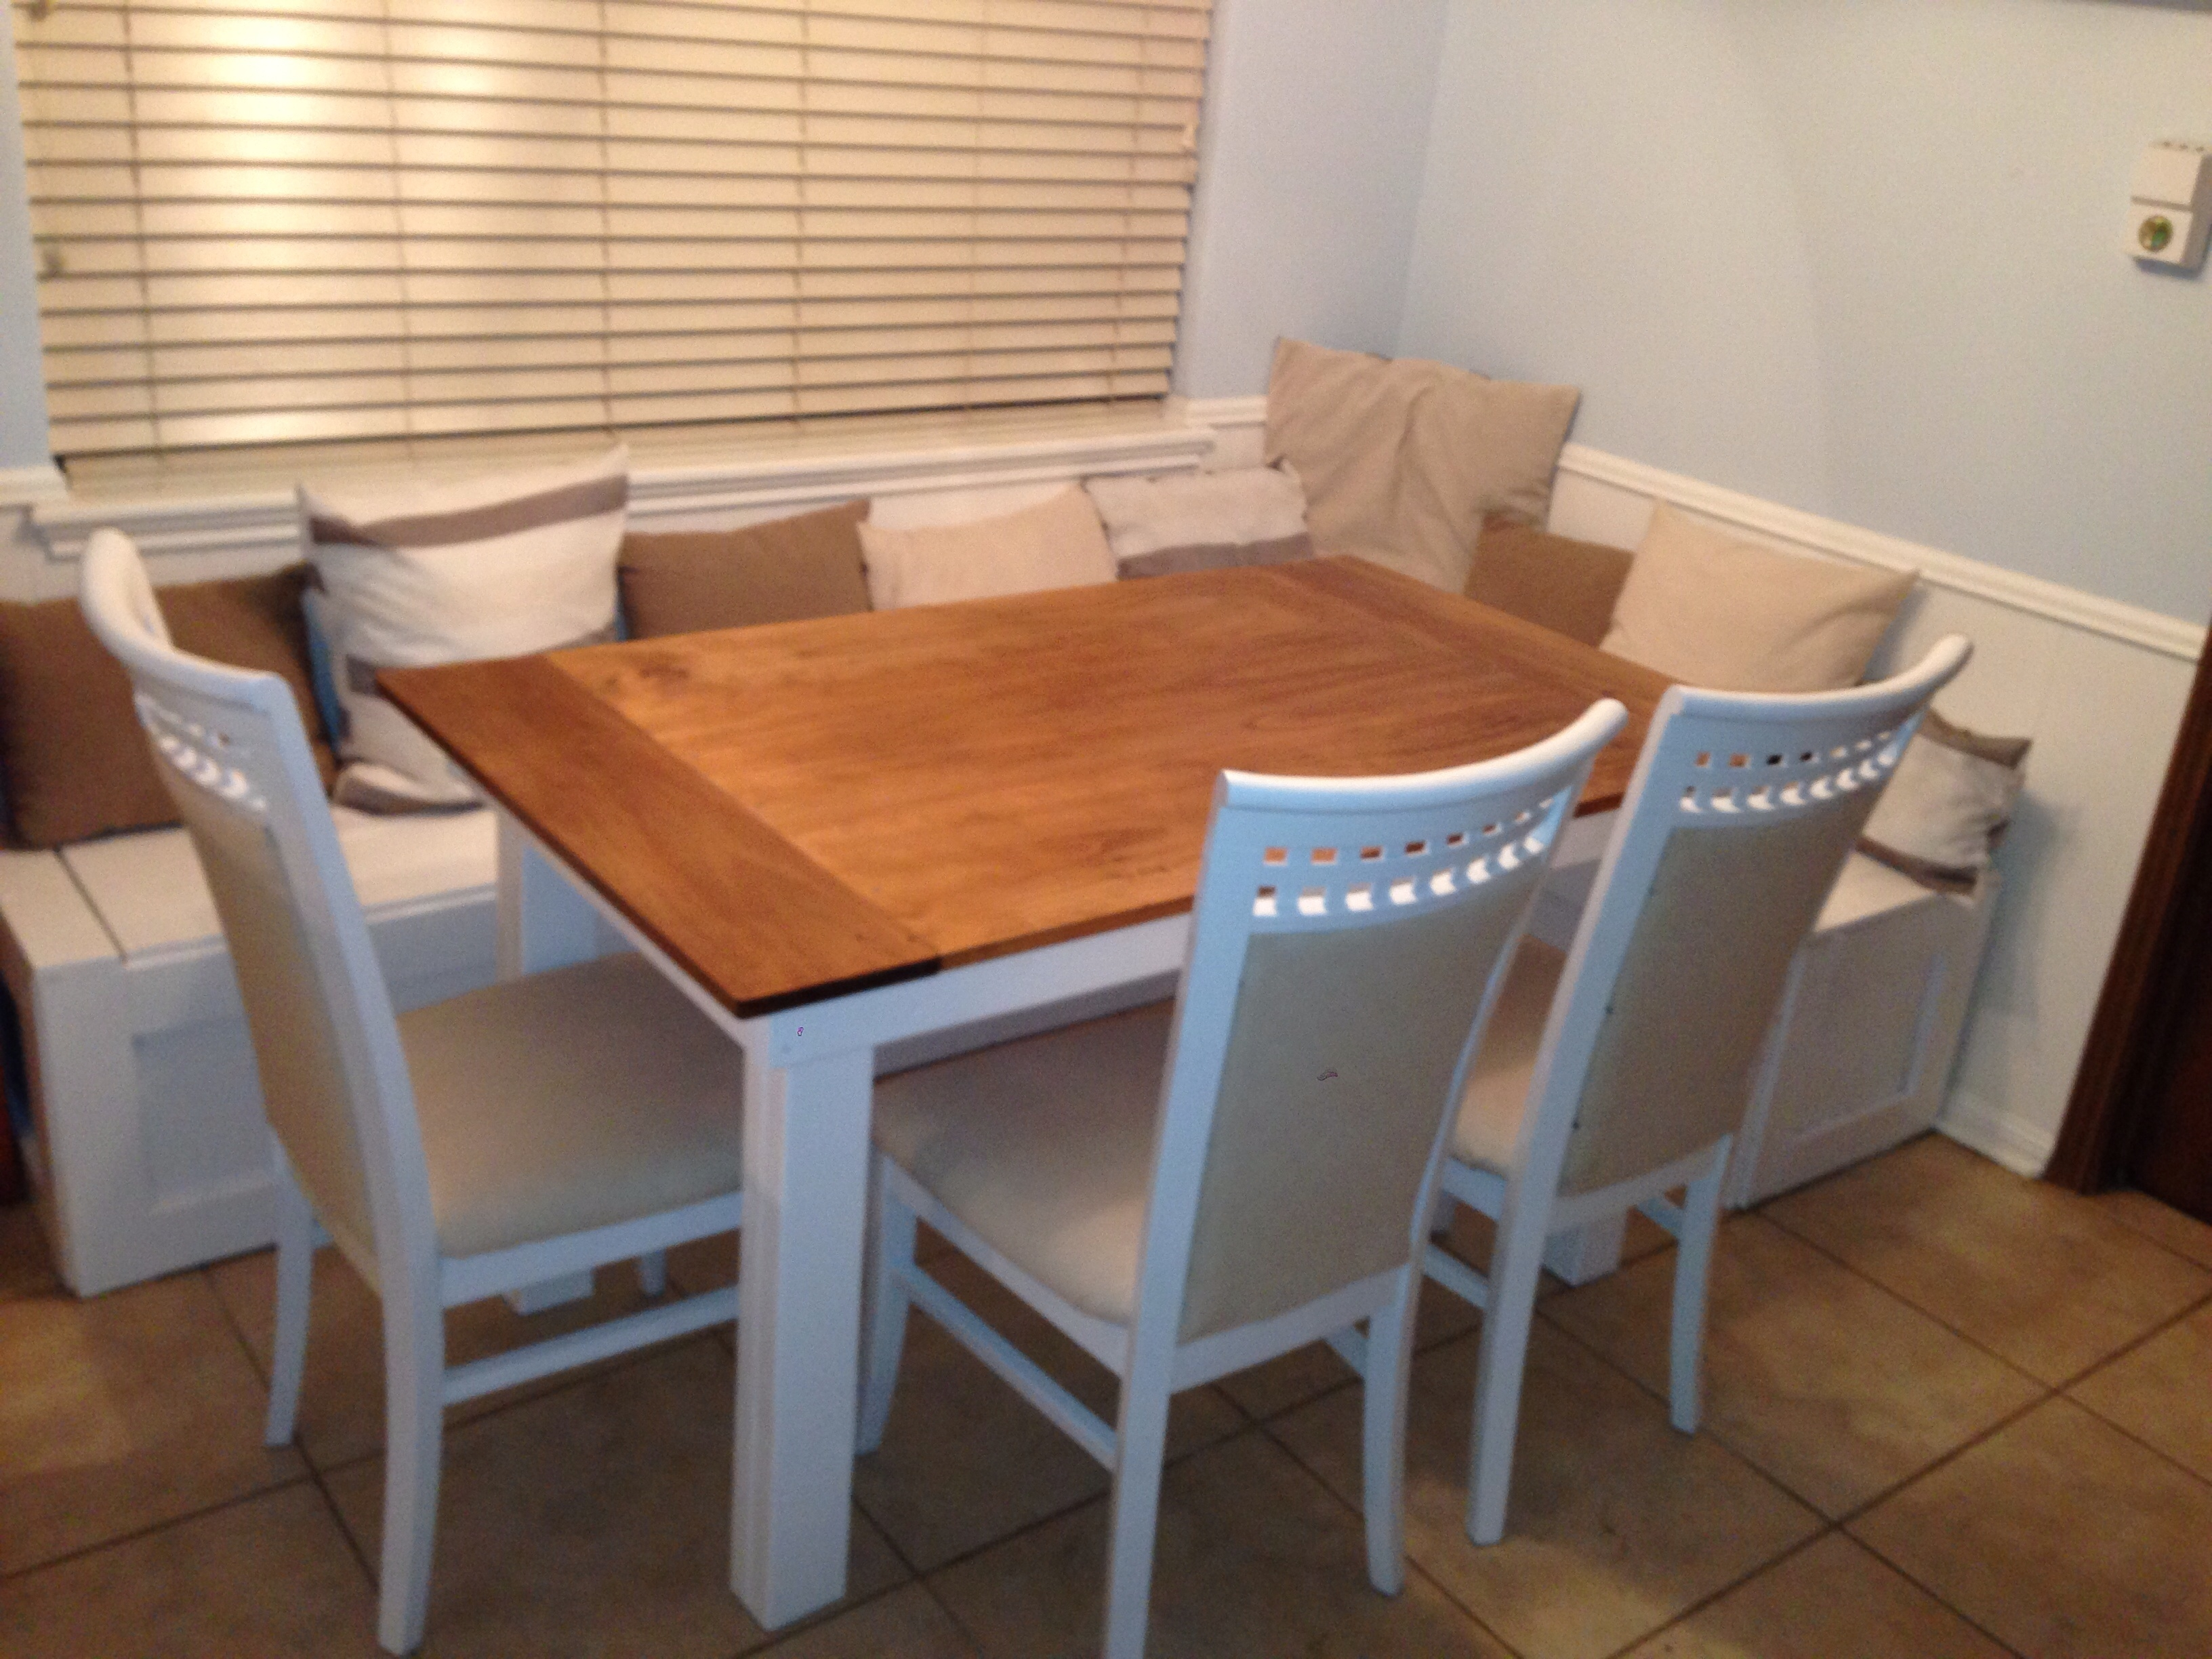 Ana White Breakfast Nook Benches With Table Diy Projects Layjao